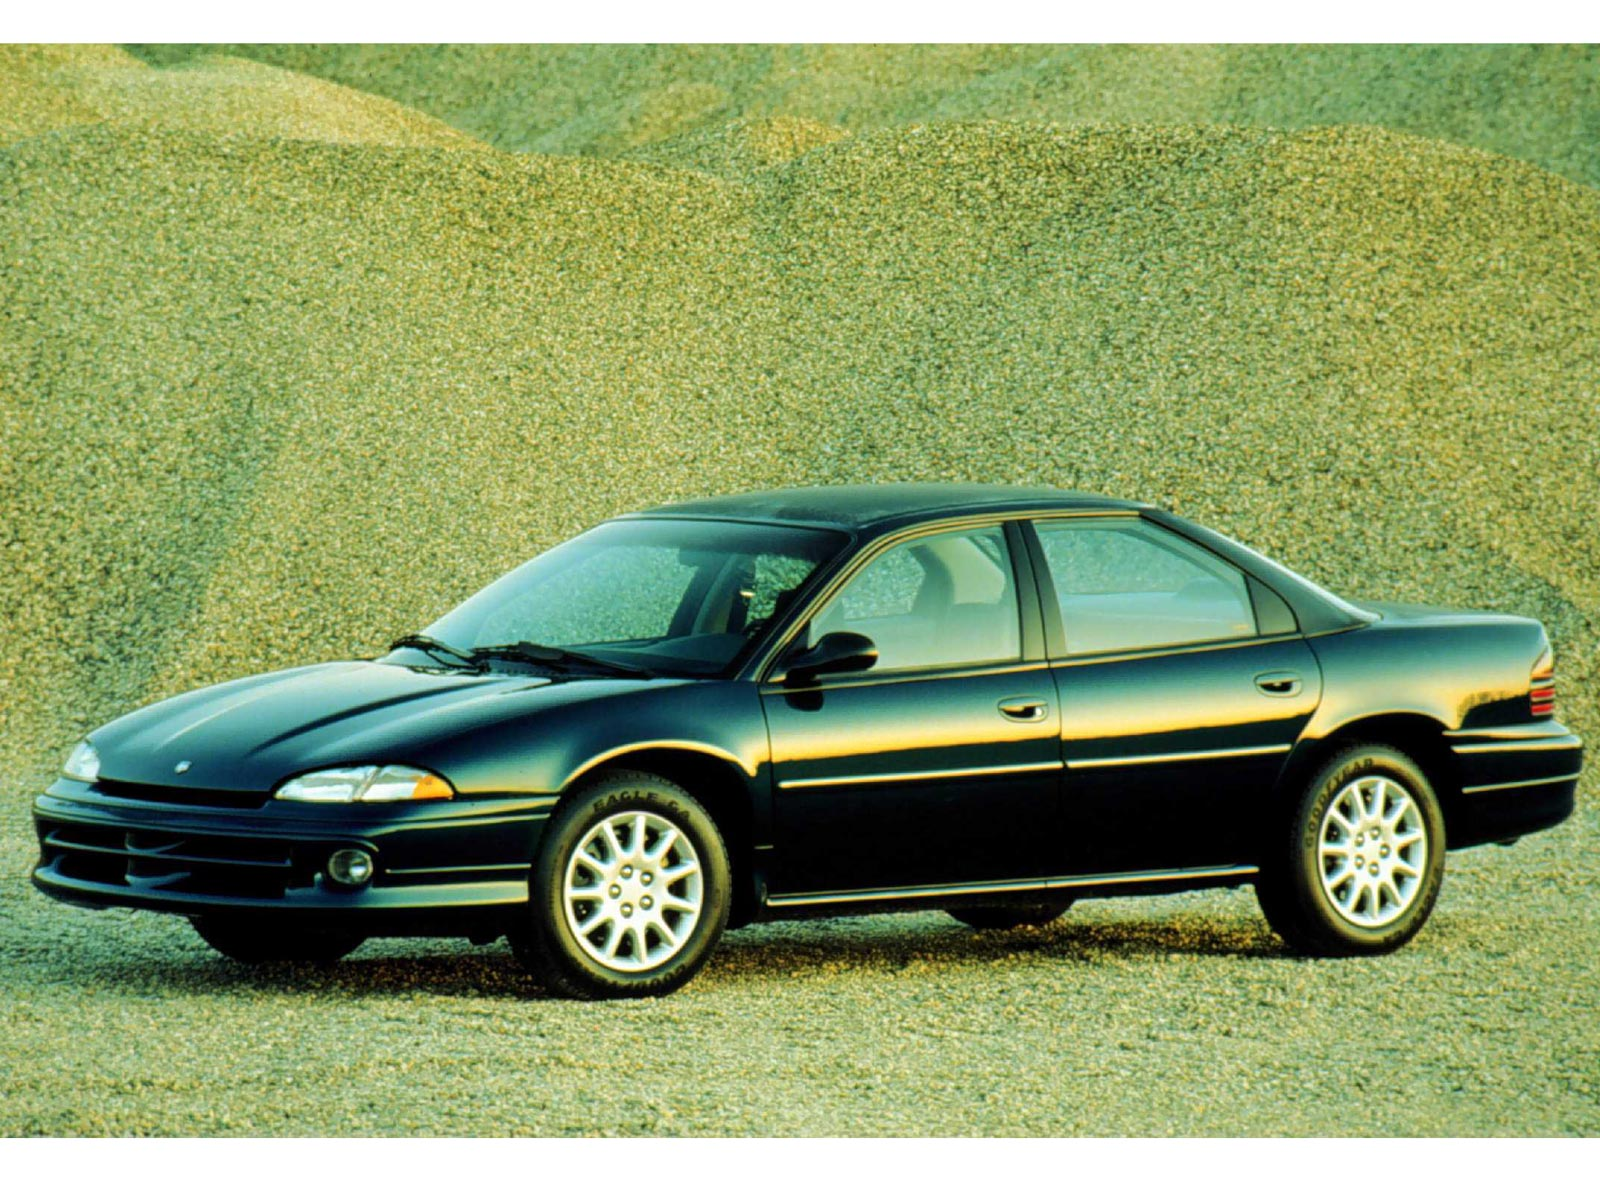 1998 Dodge Intrepid Wiring Diagram